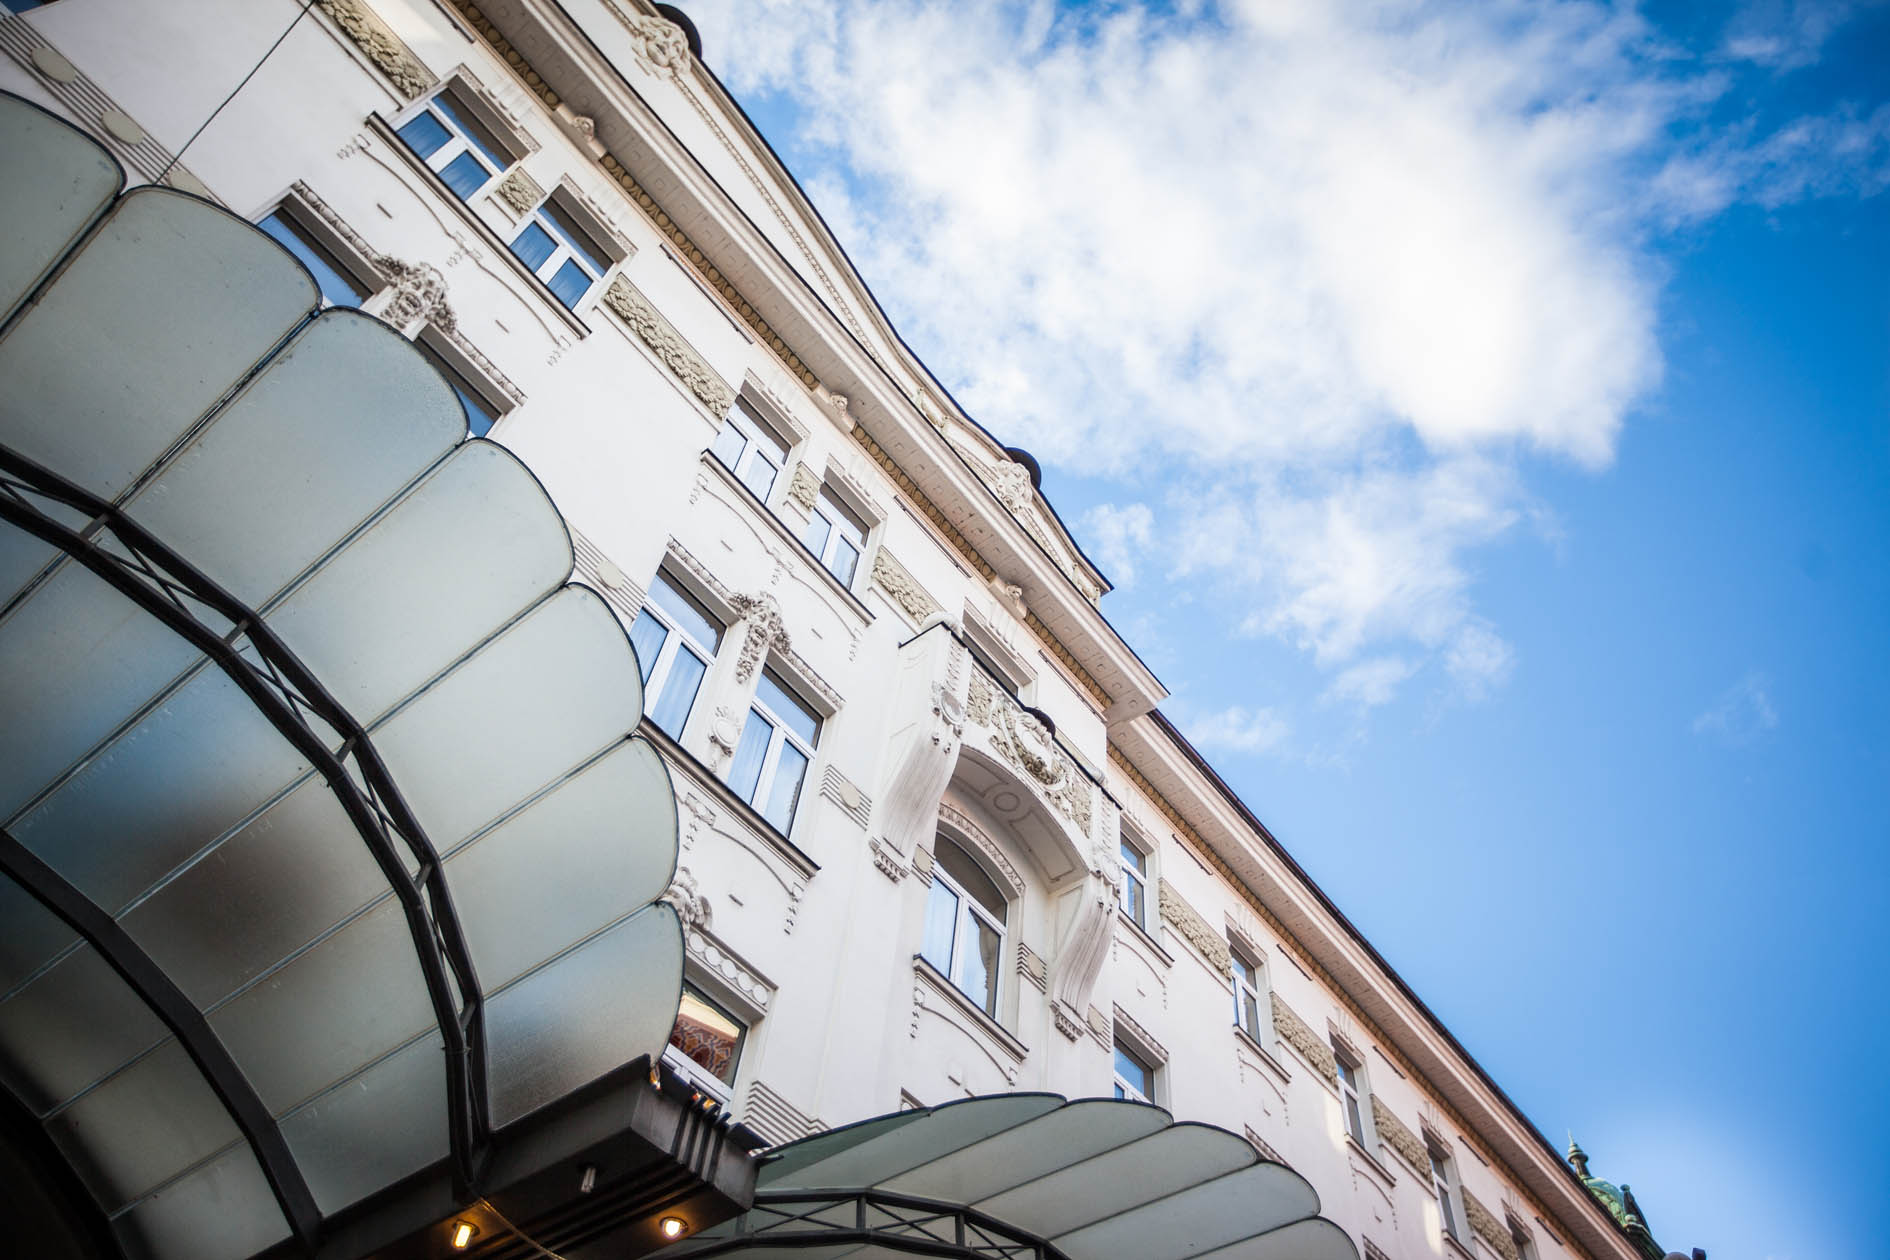 Façade from Grand Hotel Union in Ljubljana